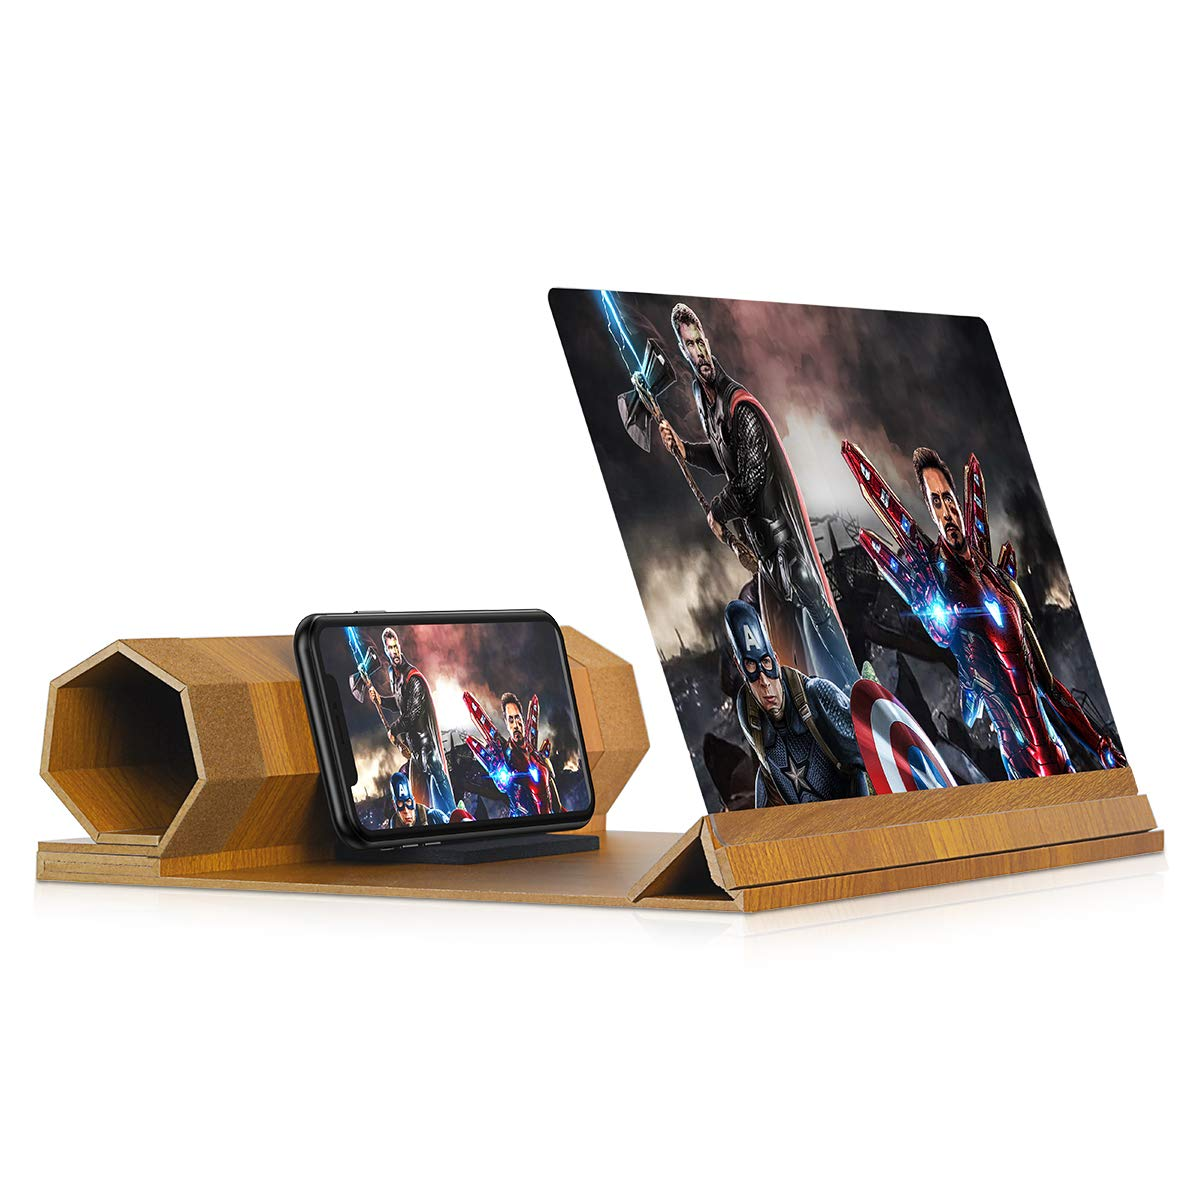 12'' Screen Magnifier for Smartphone - Mobile Phone 3D Magnifier Projector Screen for Movies, Videos, and Gaming - Foldable Phone Stand with Screen Amplifier - Compatible with All Smartphones by dizauL